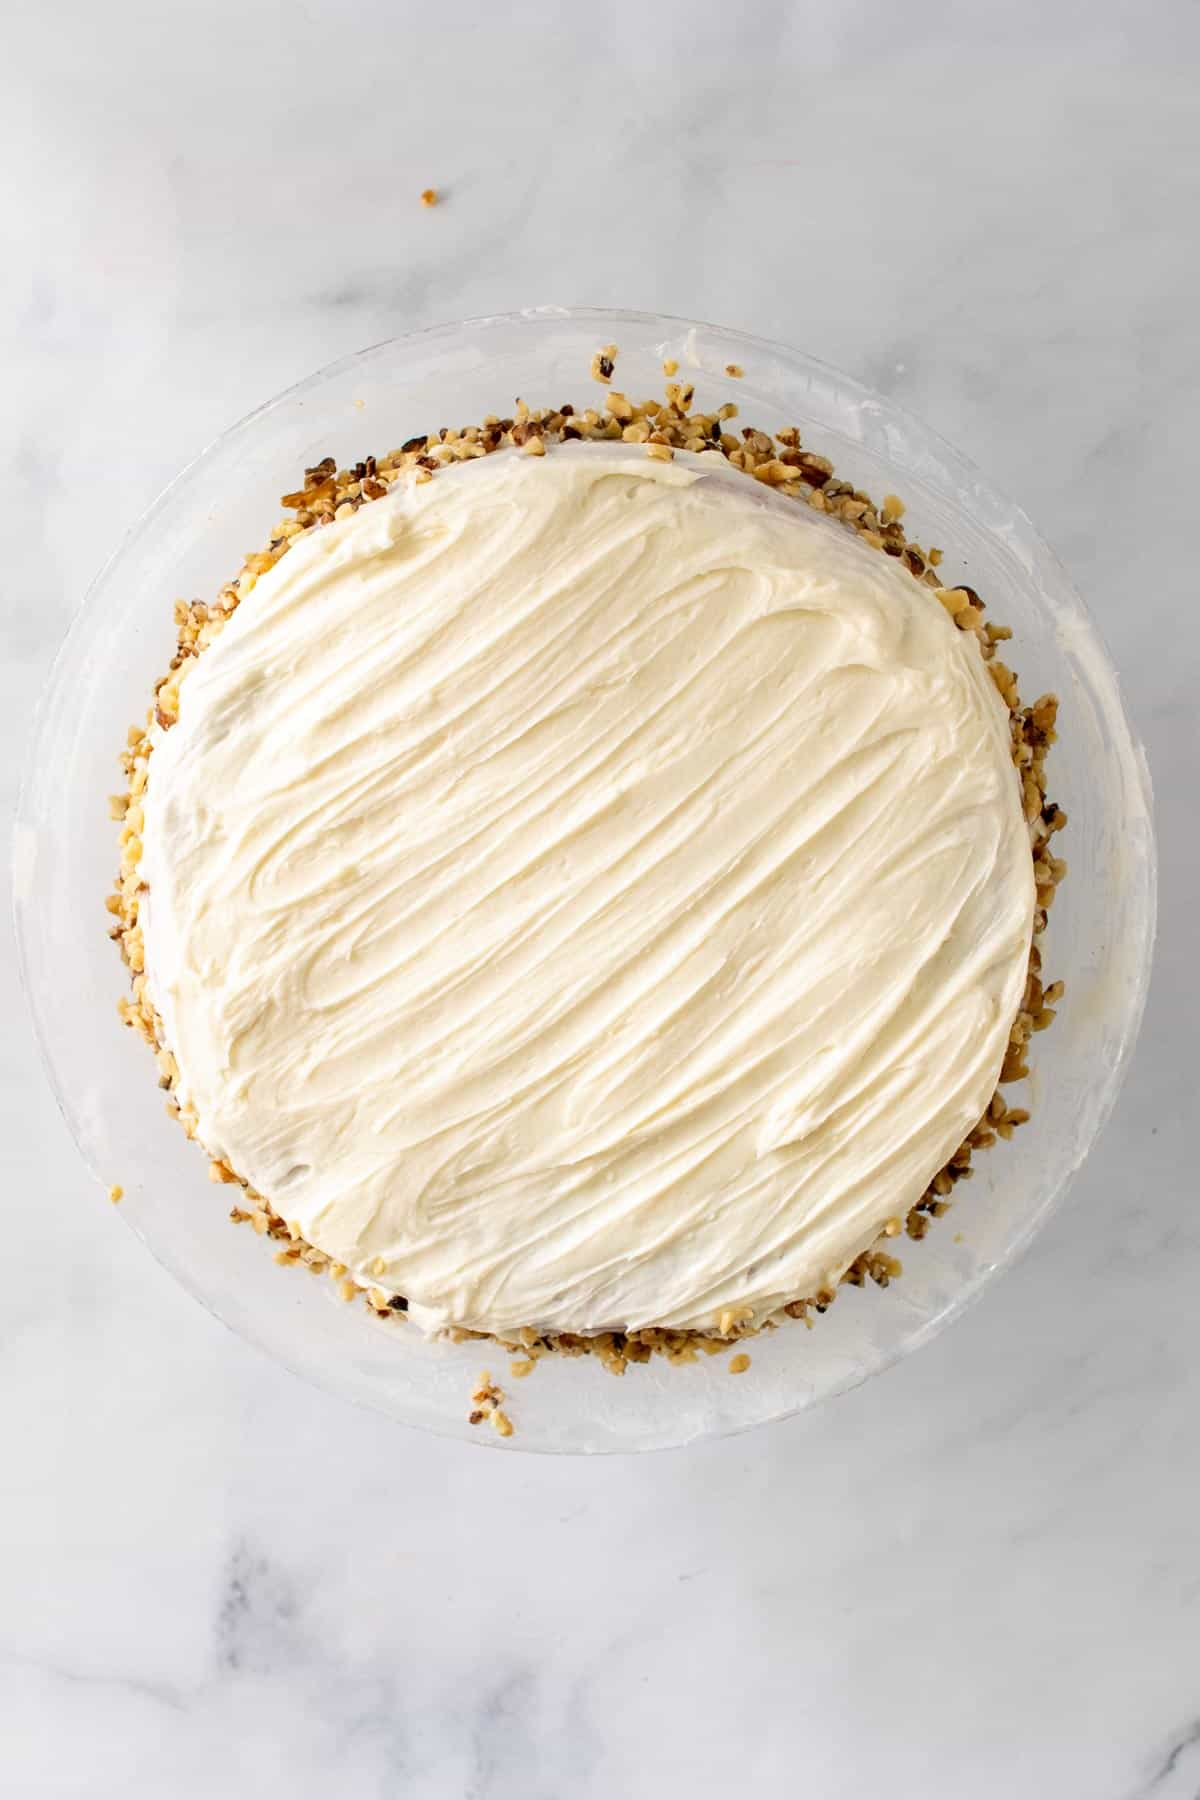 Carrot cake with cream cheese frosting on top and walnuts on the sides, as seen from above